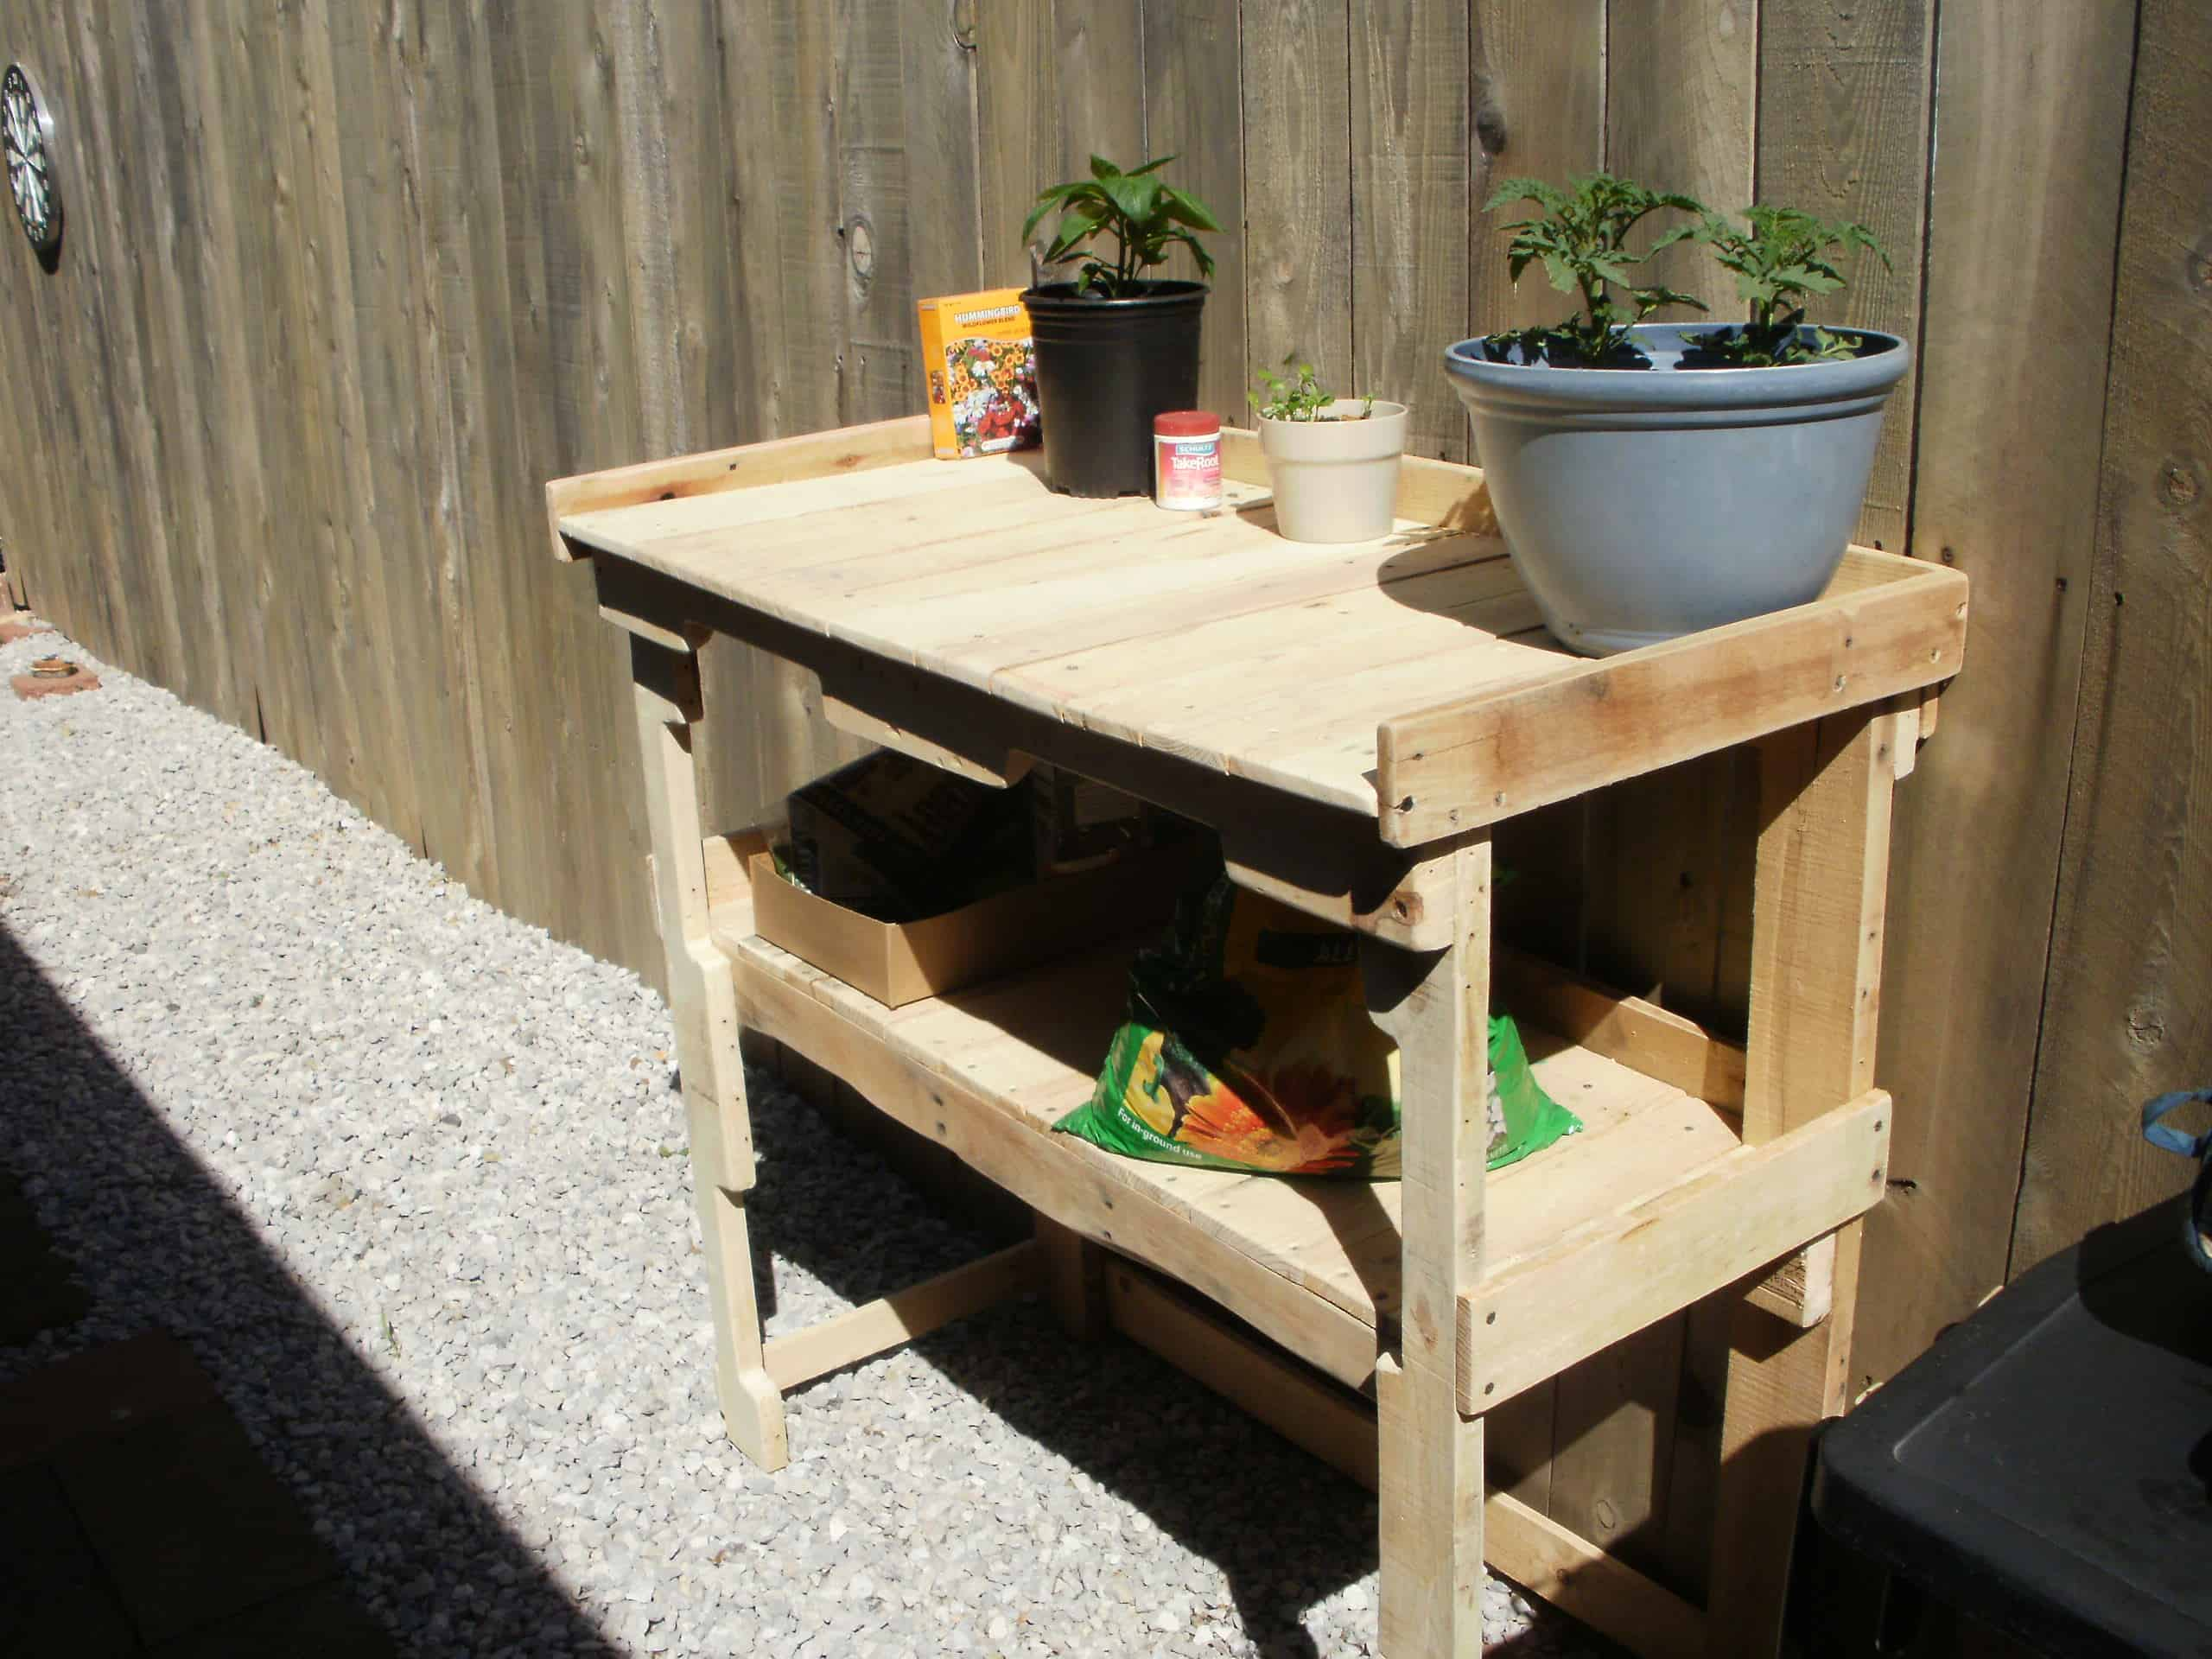 sam outdoor be potting denise diy guest bench my with table bar turned